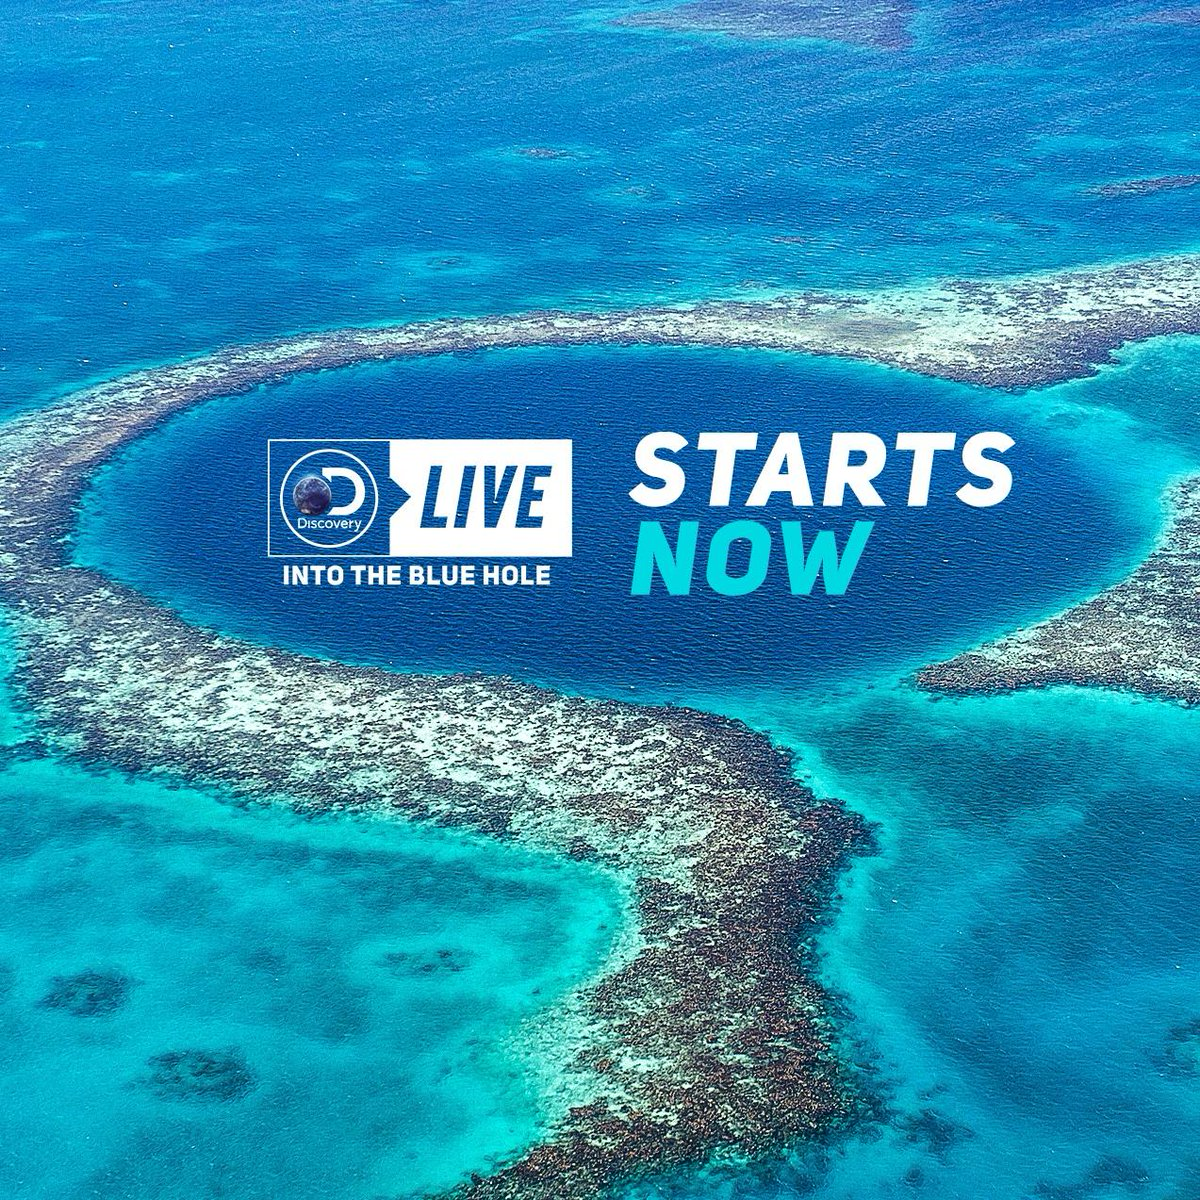 #DiscoveryLive: Into the #BlueHole starts NOW. 🔵 Watch it LIVE here --> https://t.co/810H7XuoJ7